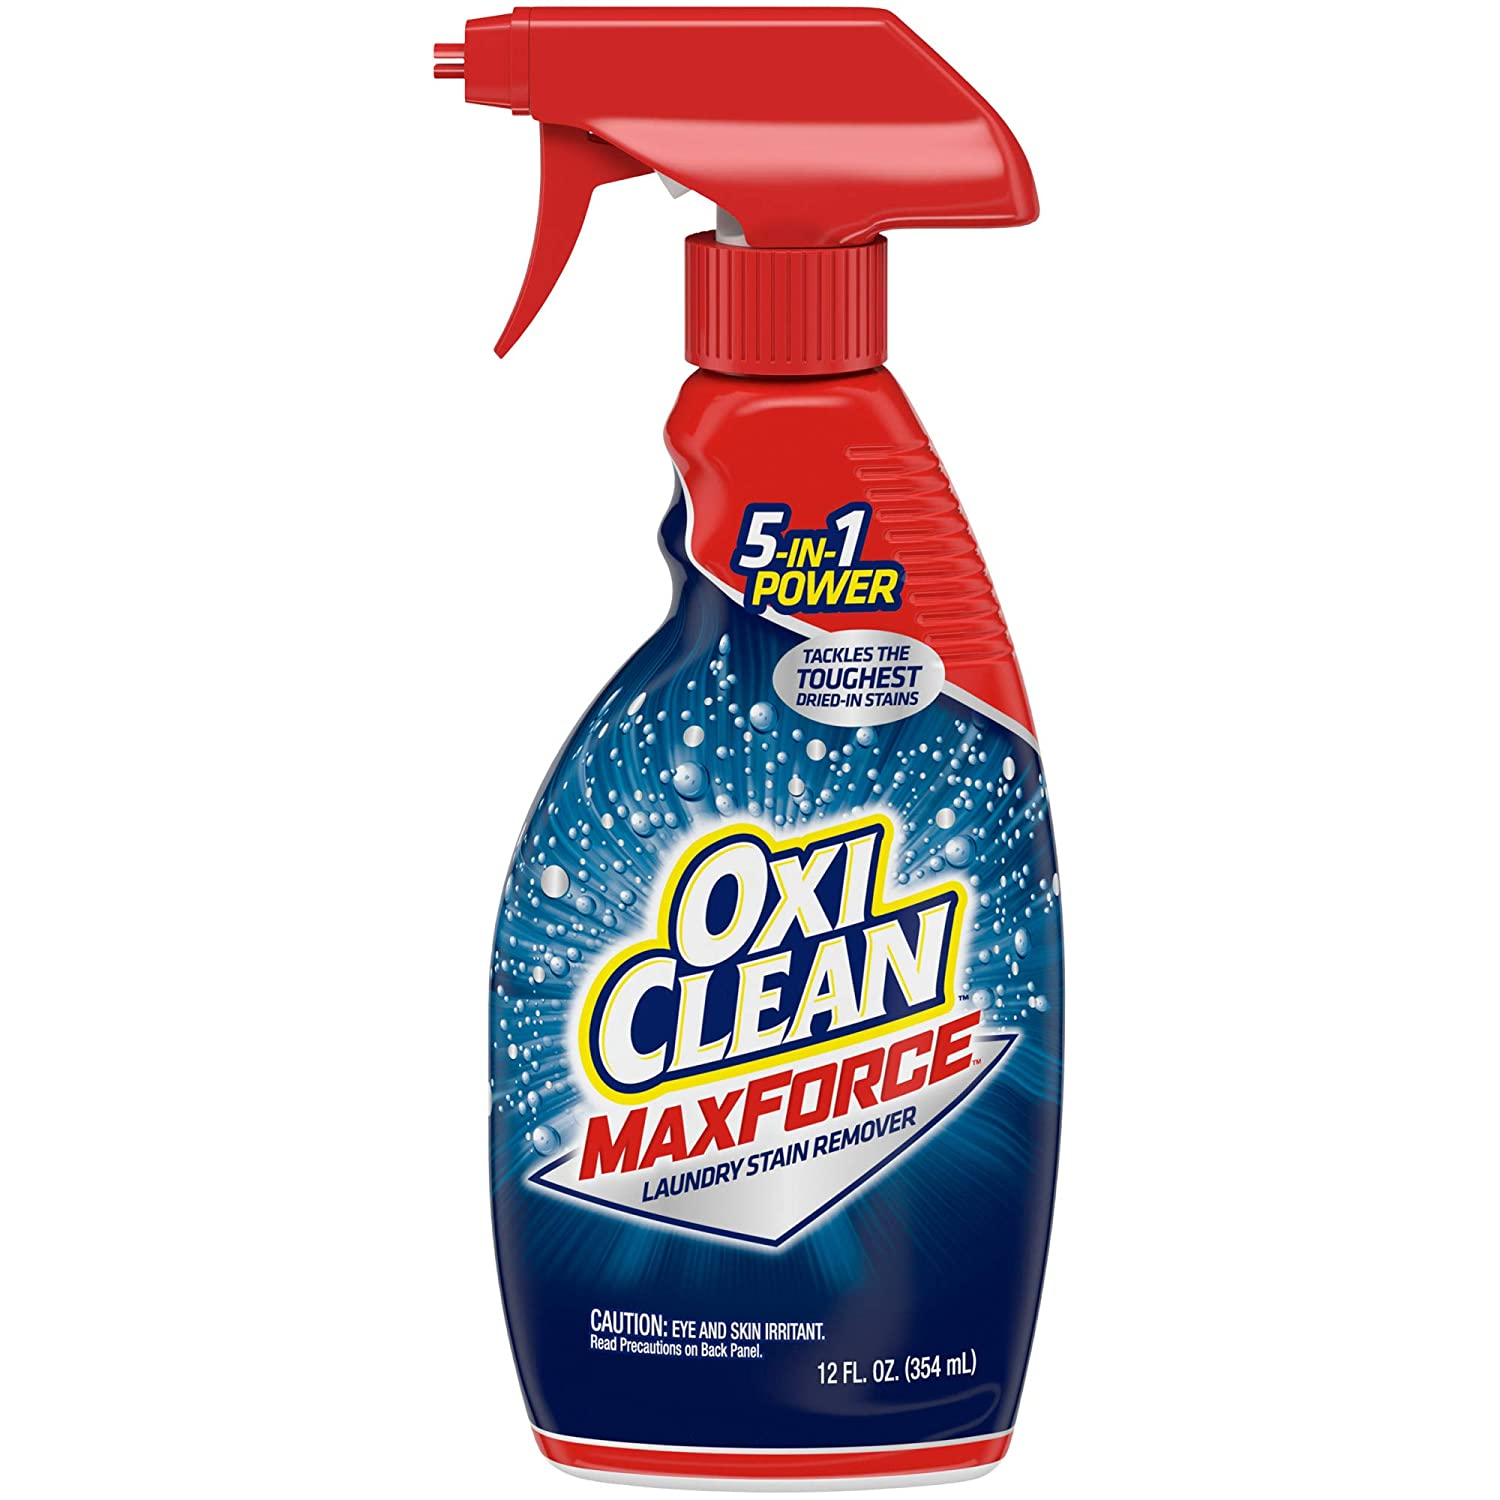 OxiClean MaxForce Laundry Stain Remover Spray, 12 Fl. oz.